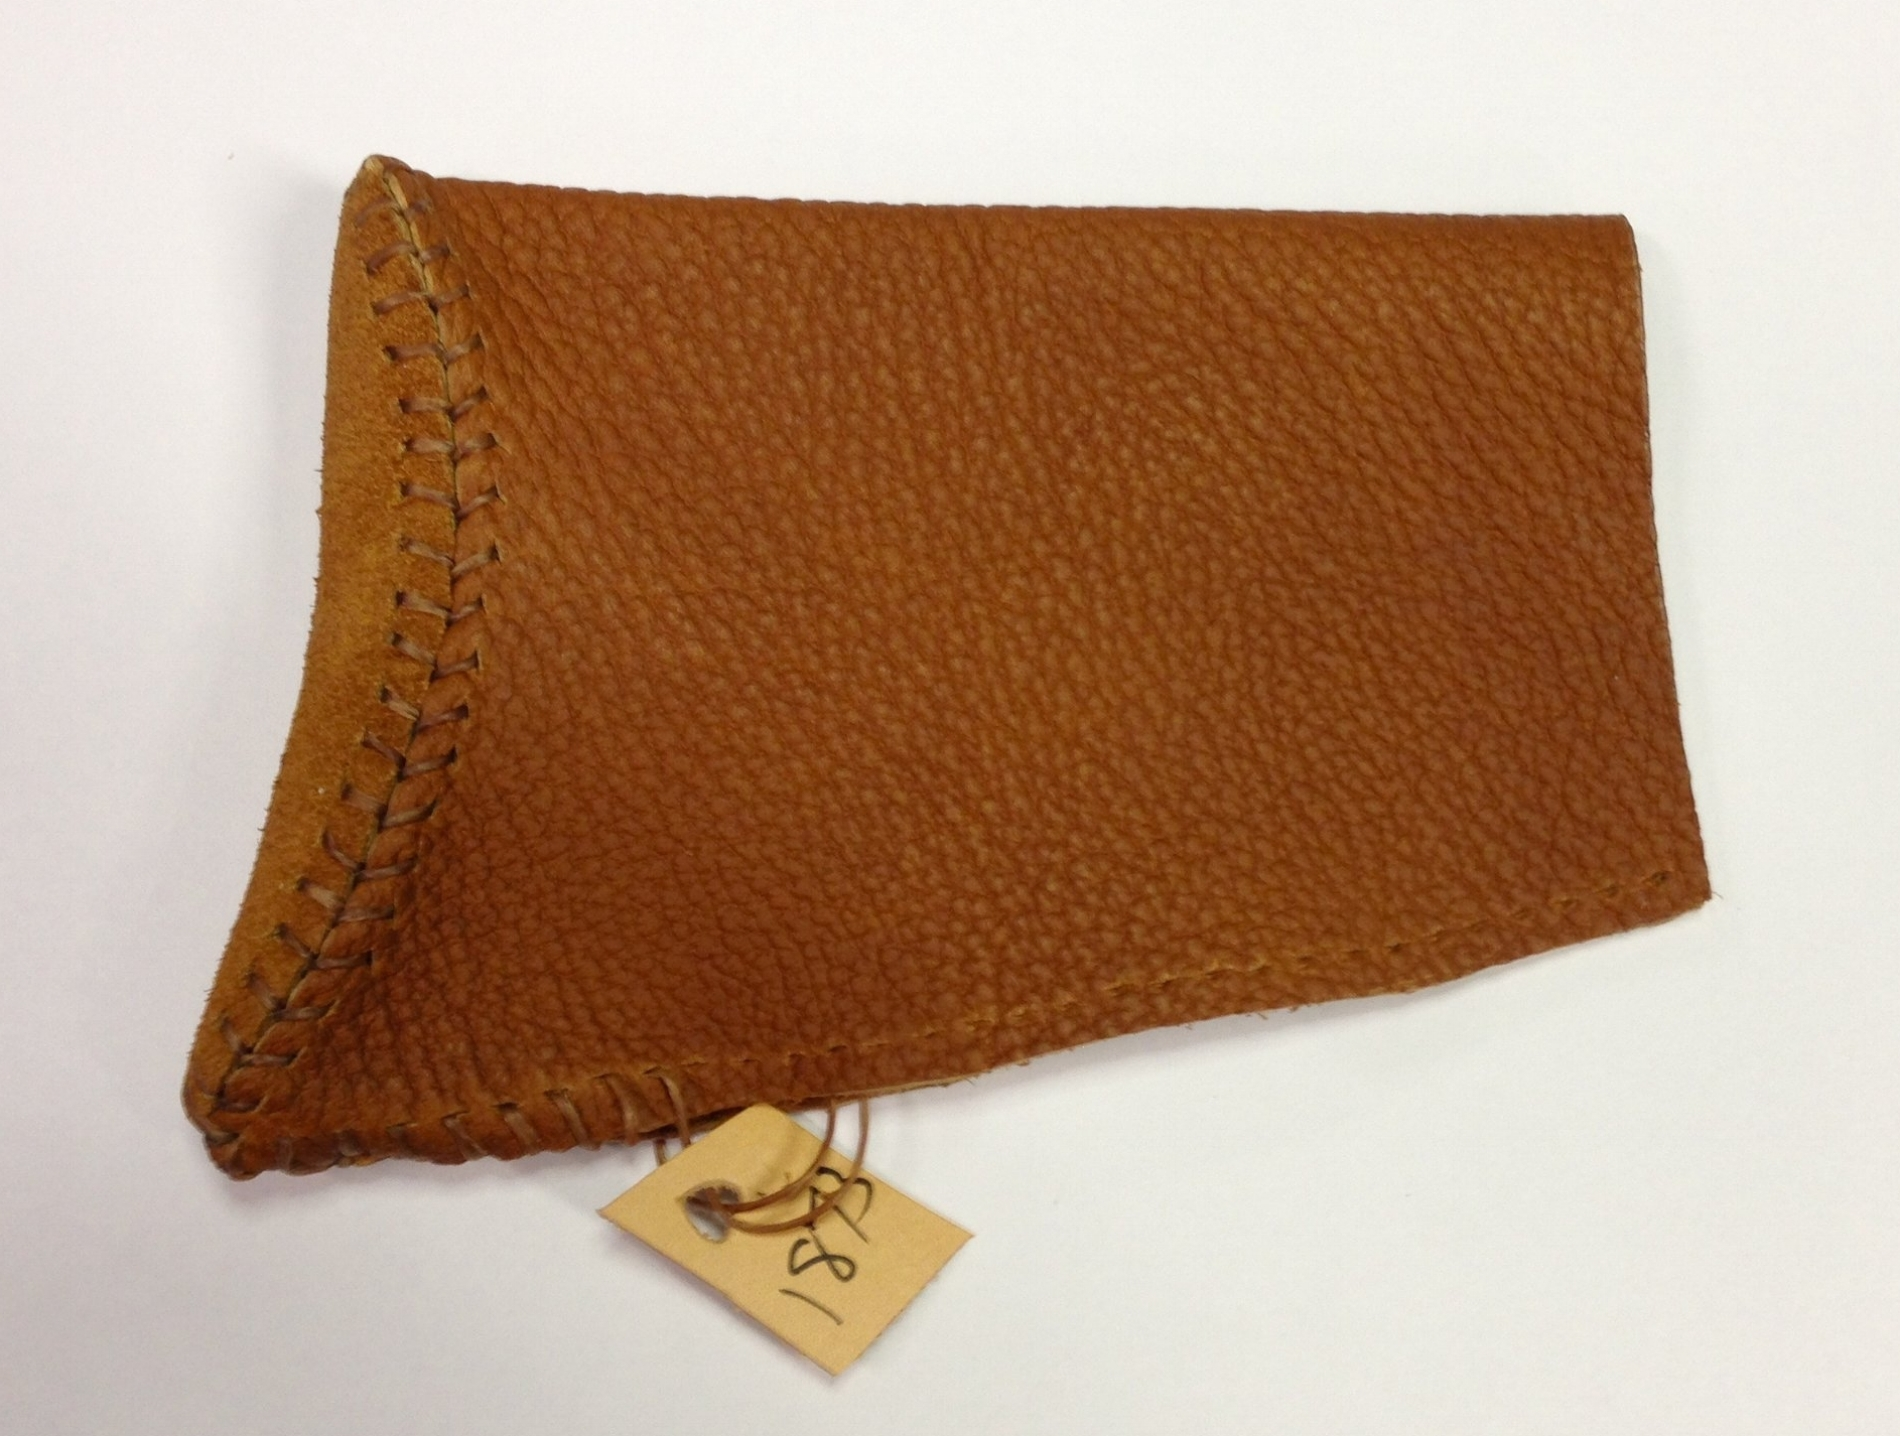 1873 Winchester/Uberti Rifle Cover in our standard tan color.